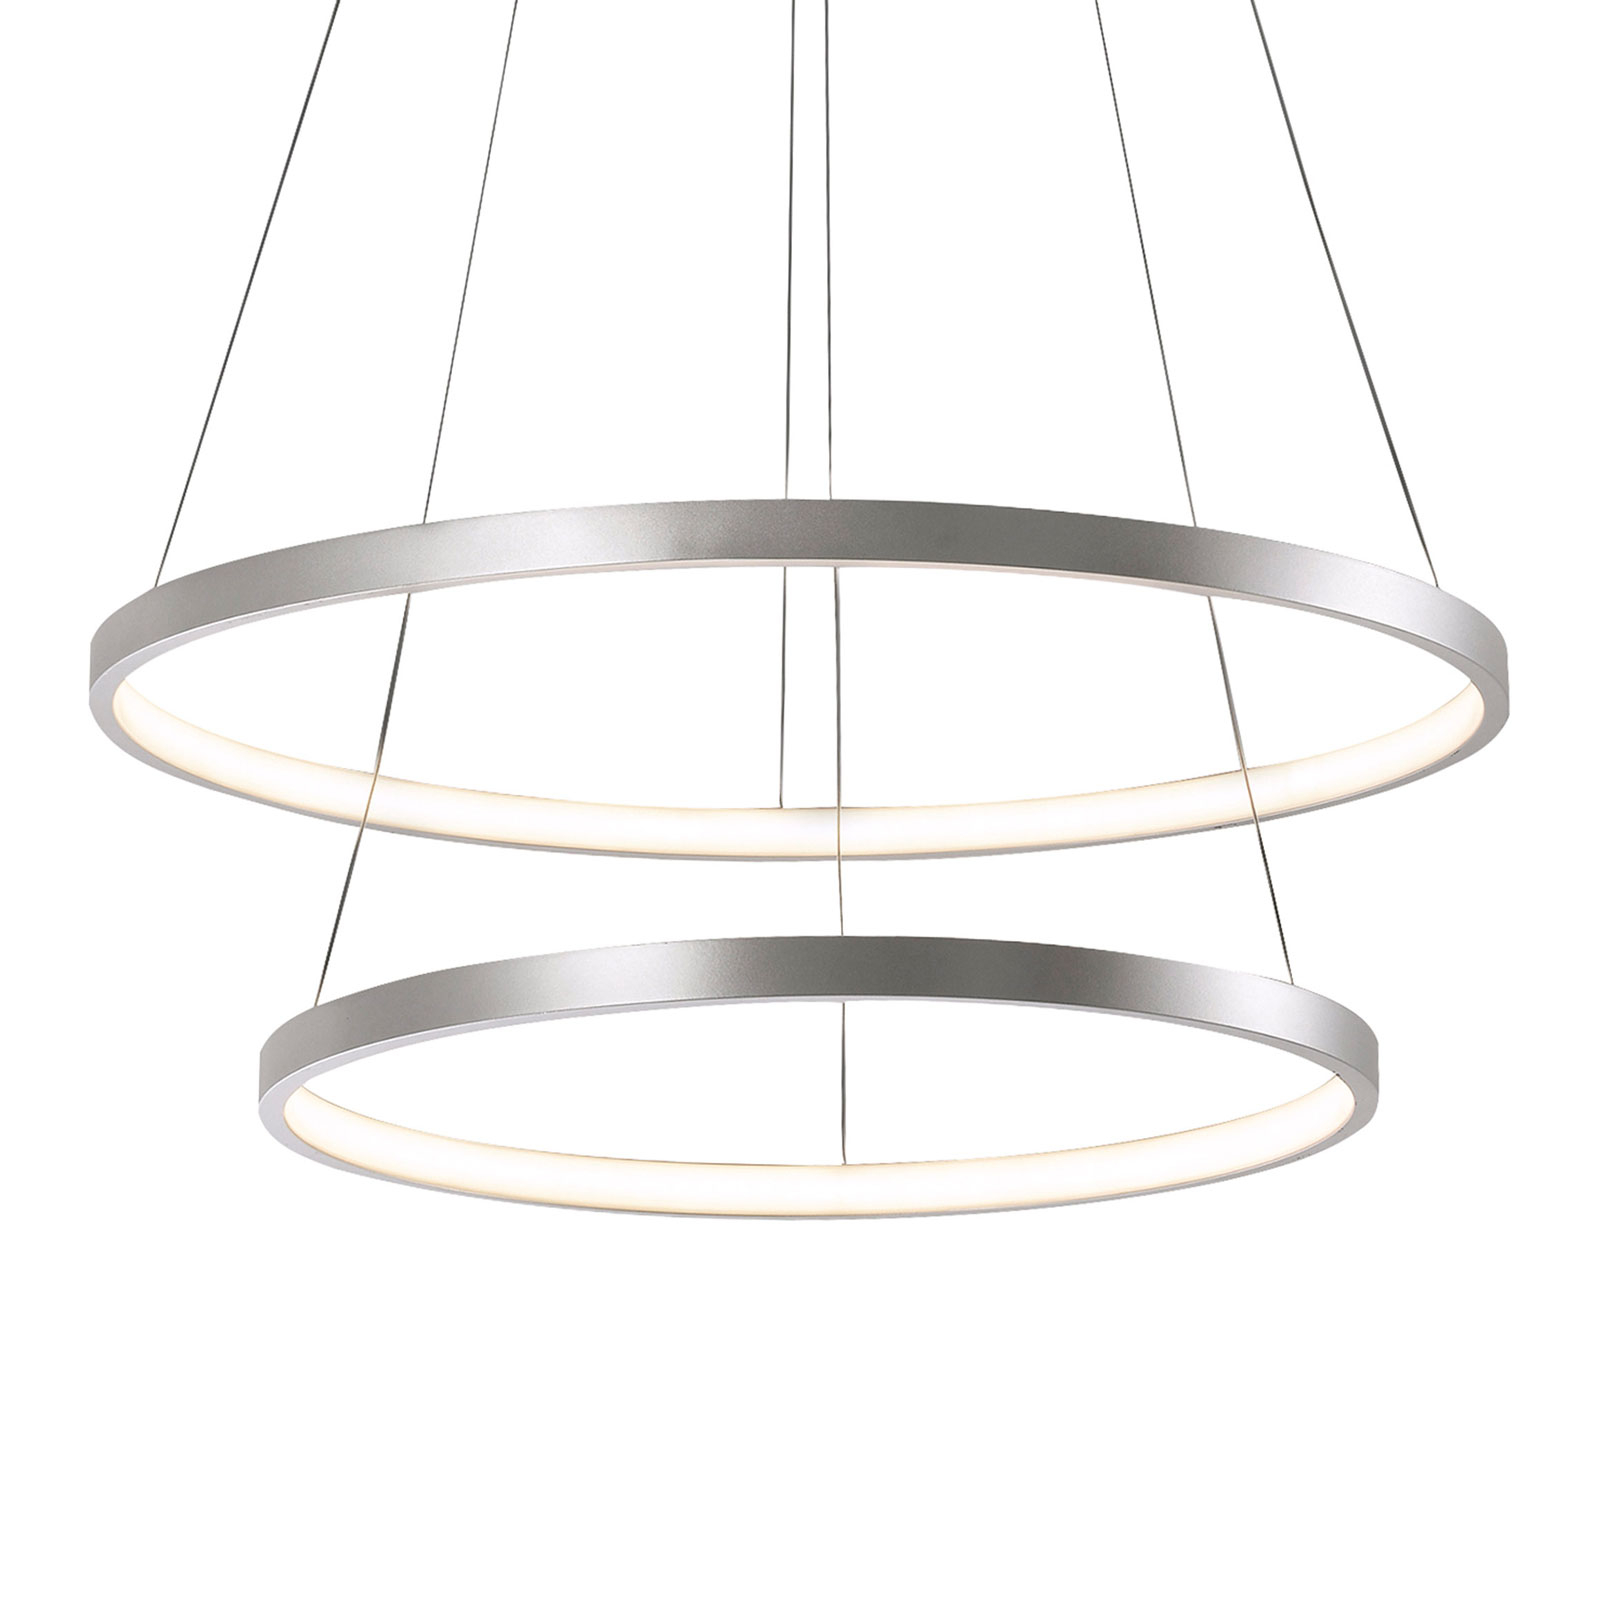 LED hanglamp Circle zilver, 2-lamps